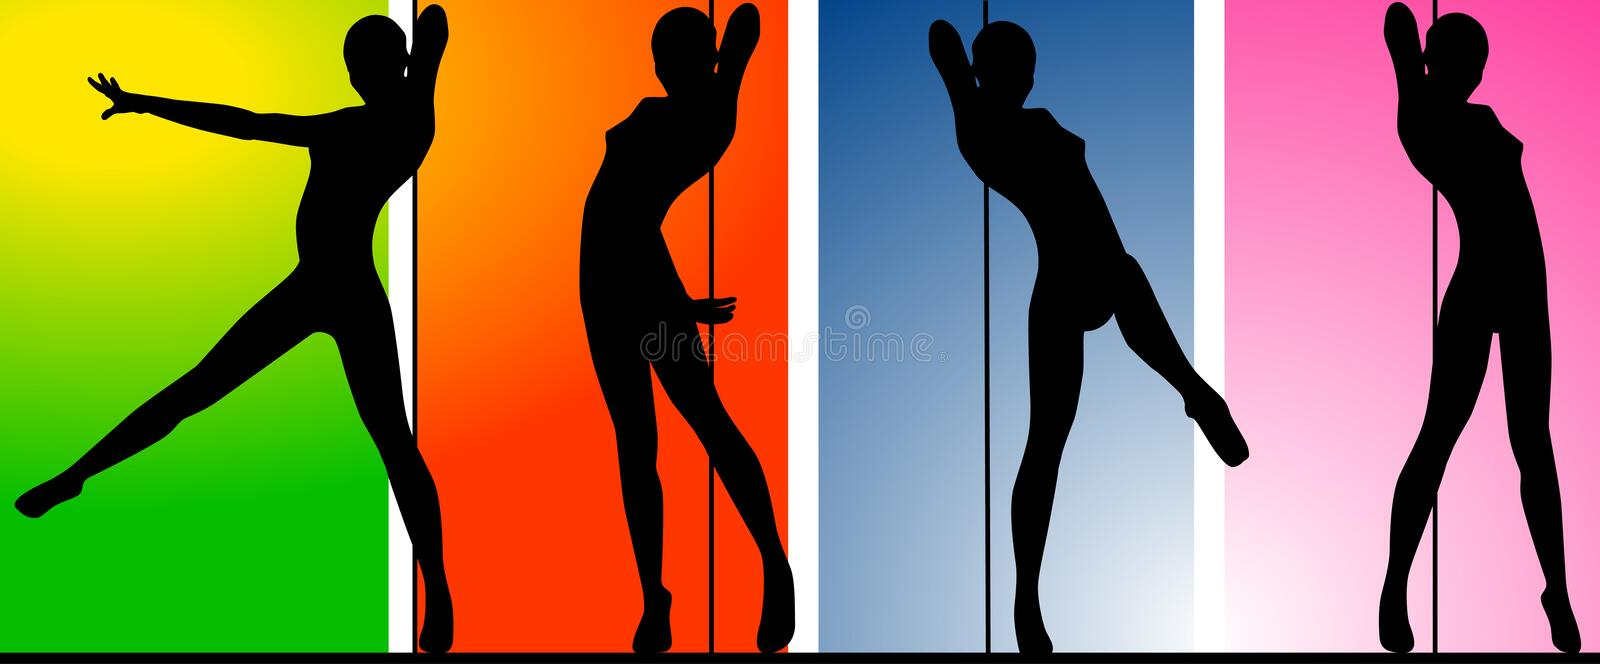 Download Pole Dancer stock illustration. Illustration of woman - 5649399